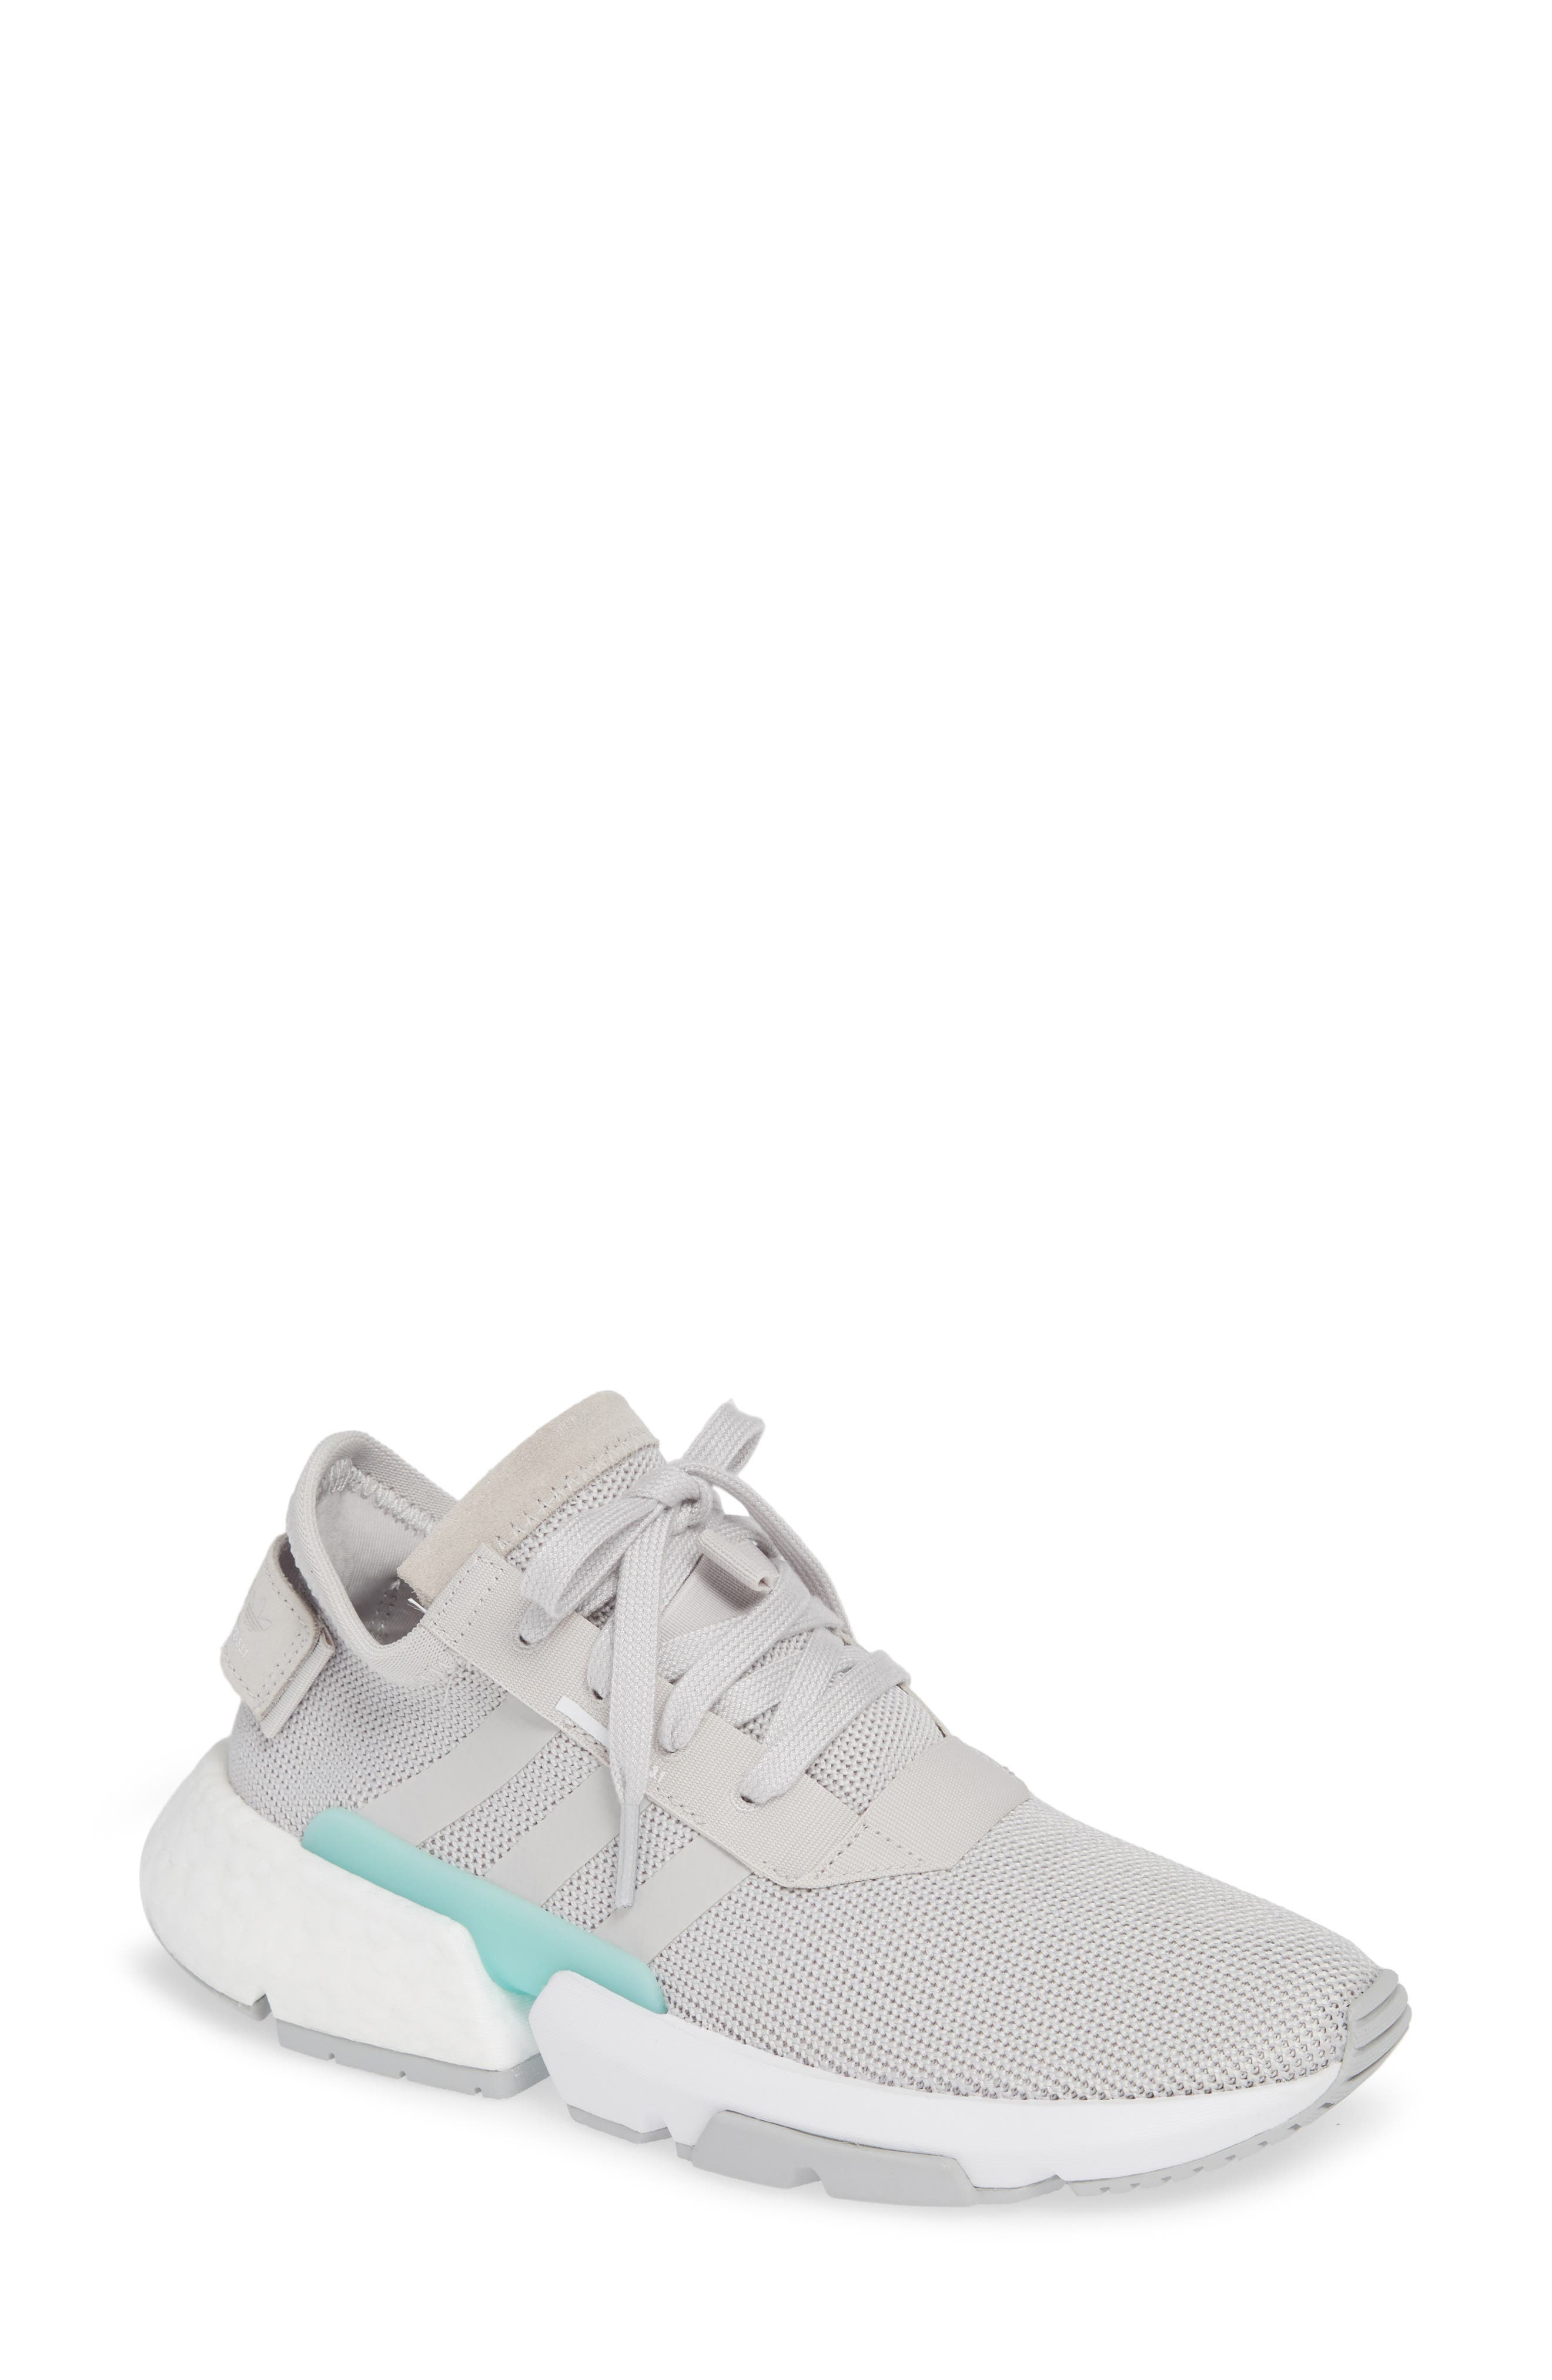 Pod S3.1 Sneaker,                             Main thumbnail 1, color,                             GREY ONE/ GREY ONE/ CLEAR MINT